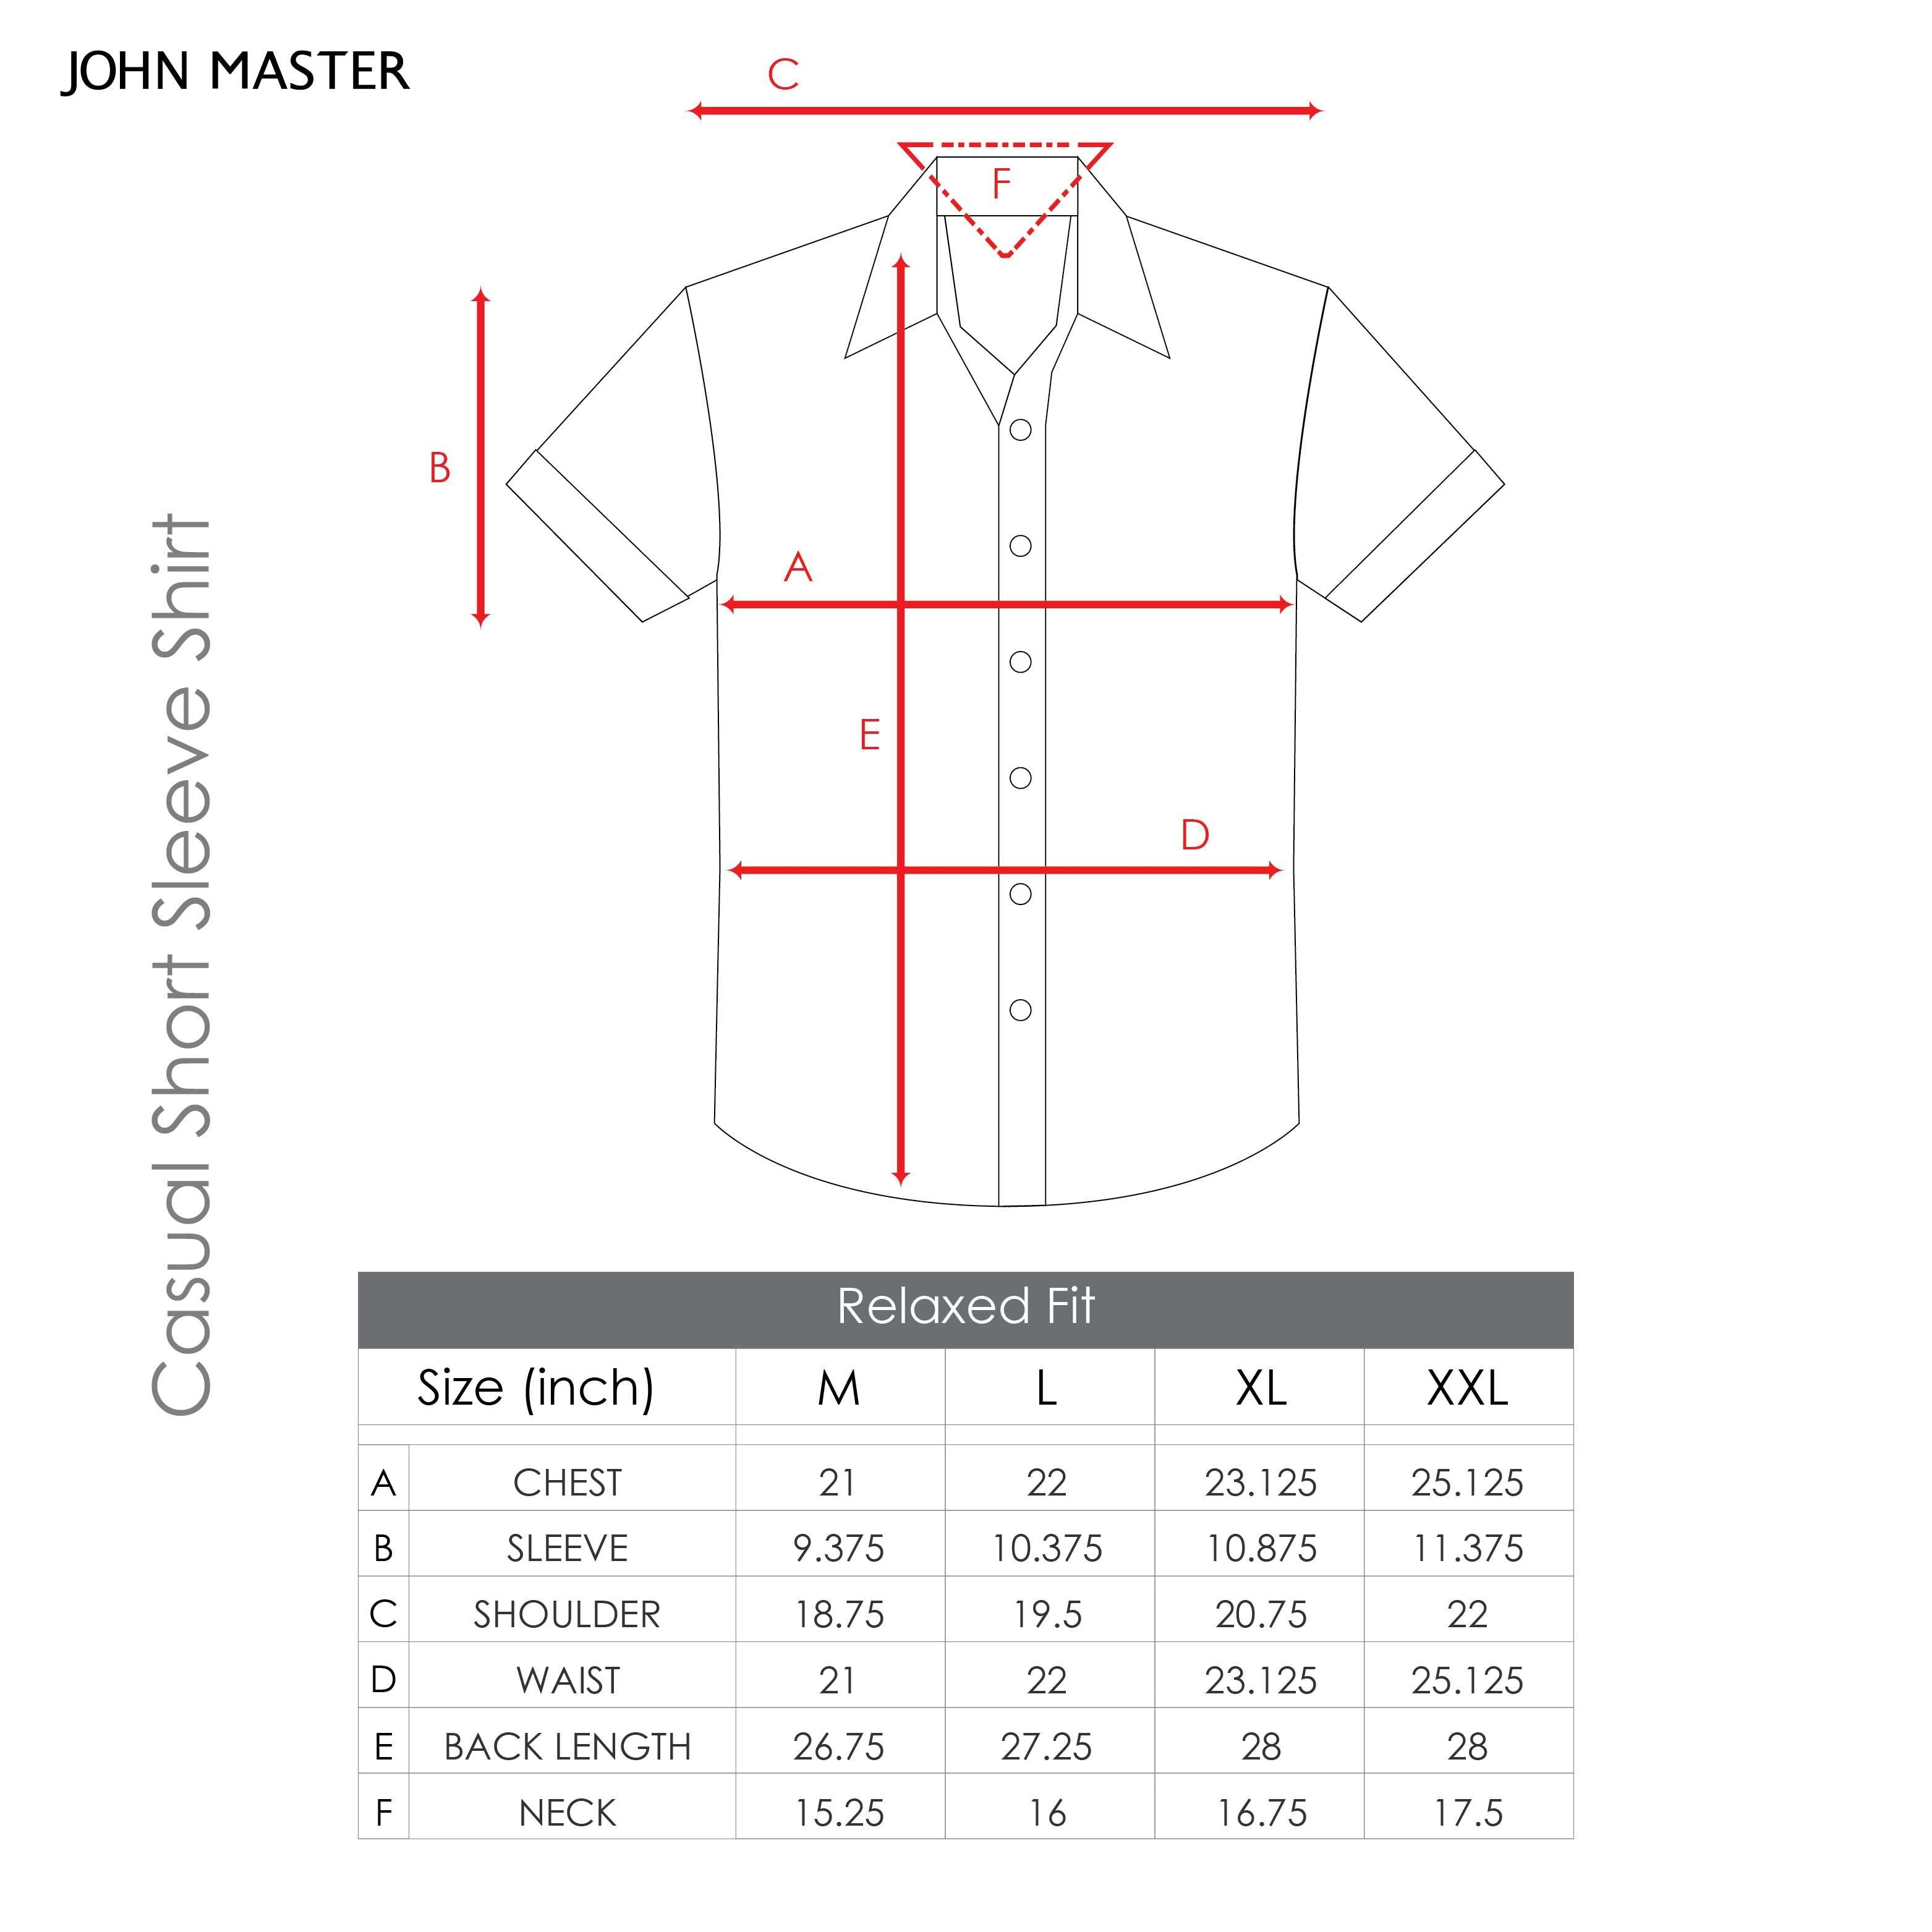 John Master Men Casual Relax Fit Shirt Red 7037006-R1 : Buy John Master online at CMG.MY